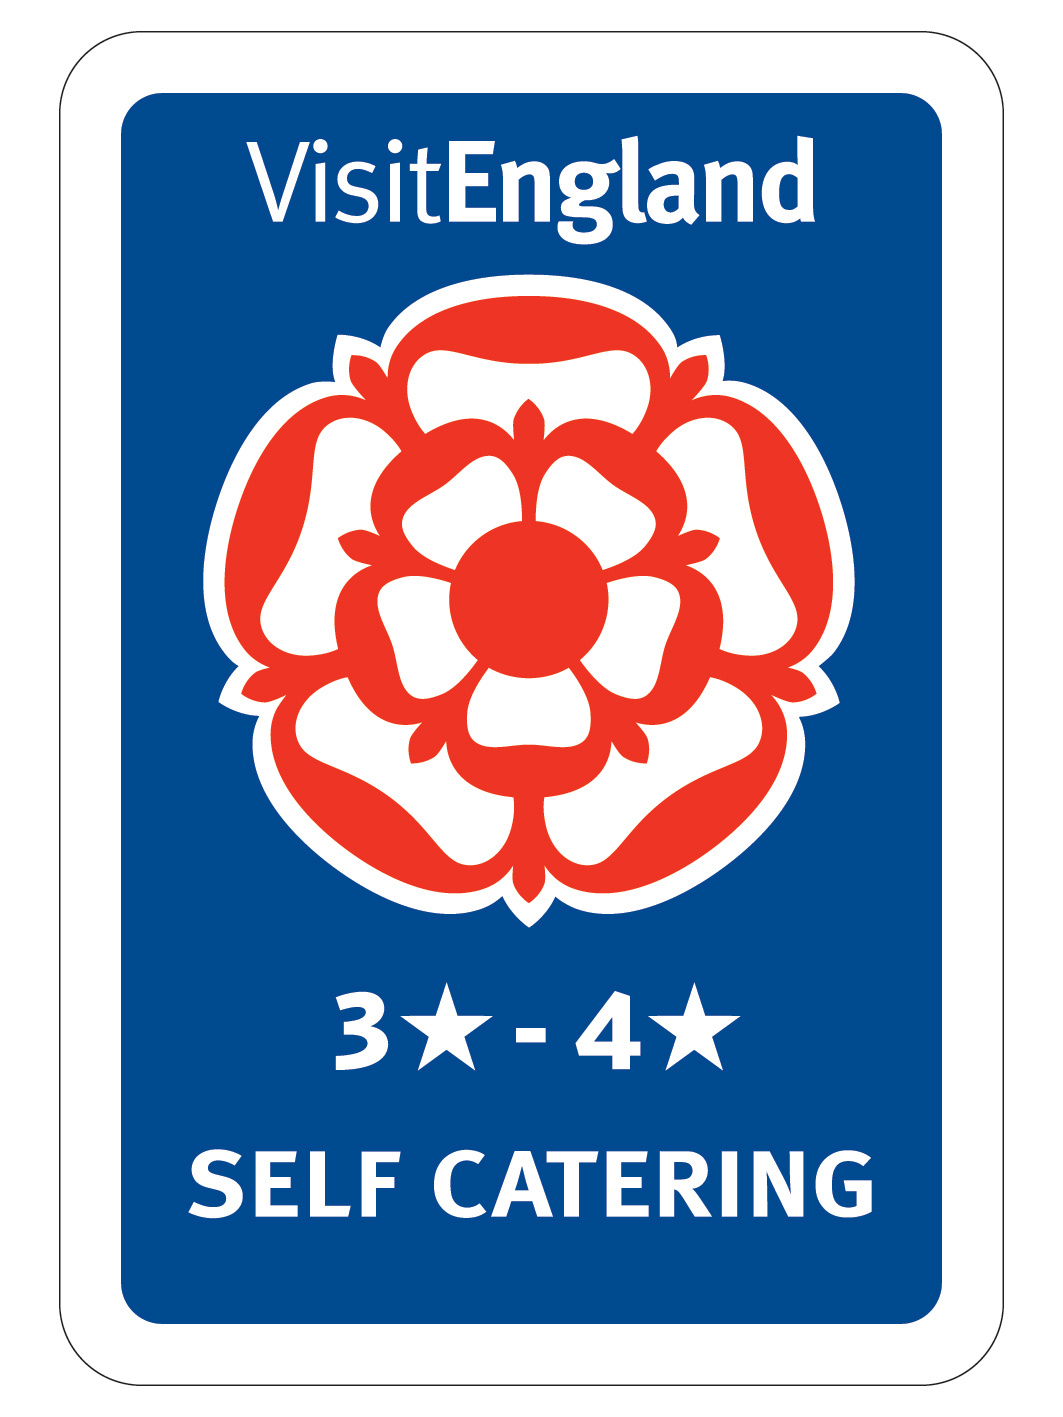 3-4 Stars Self Catering